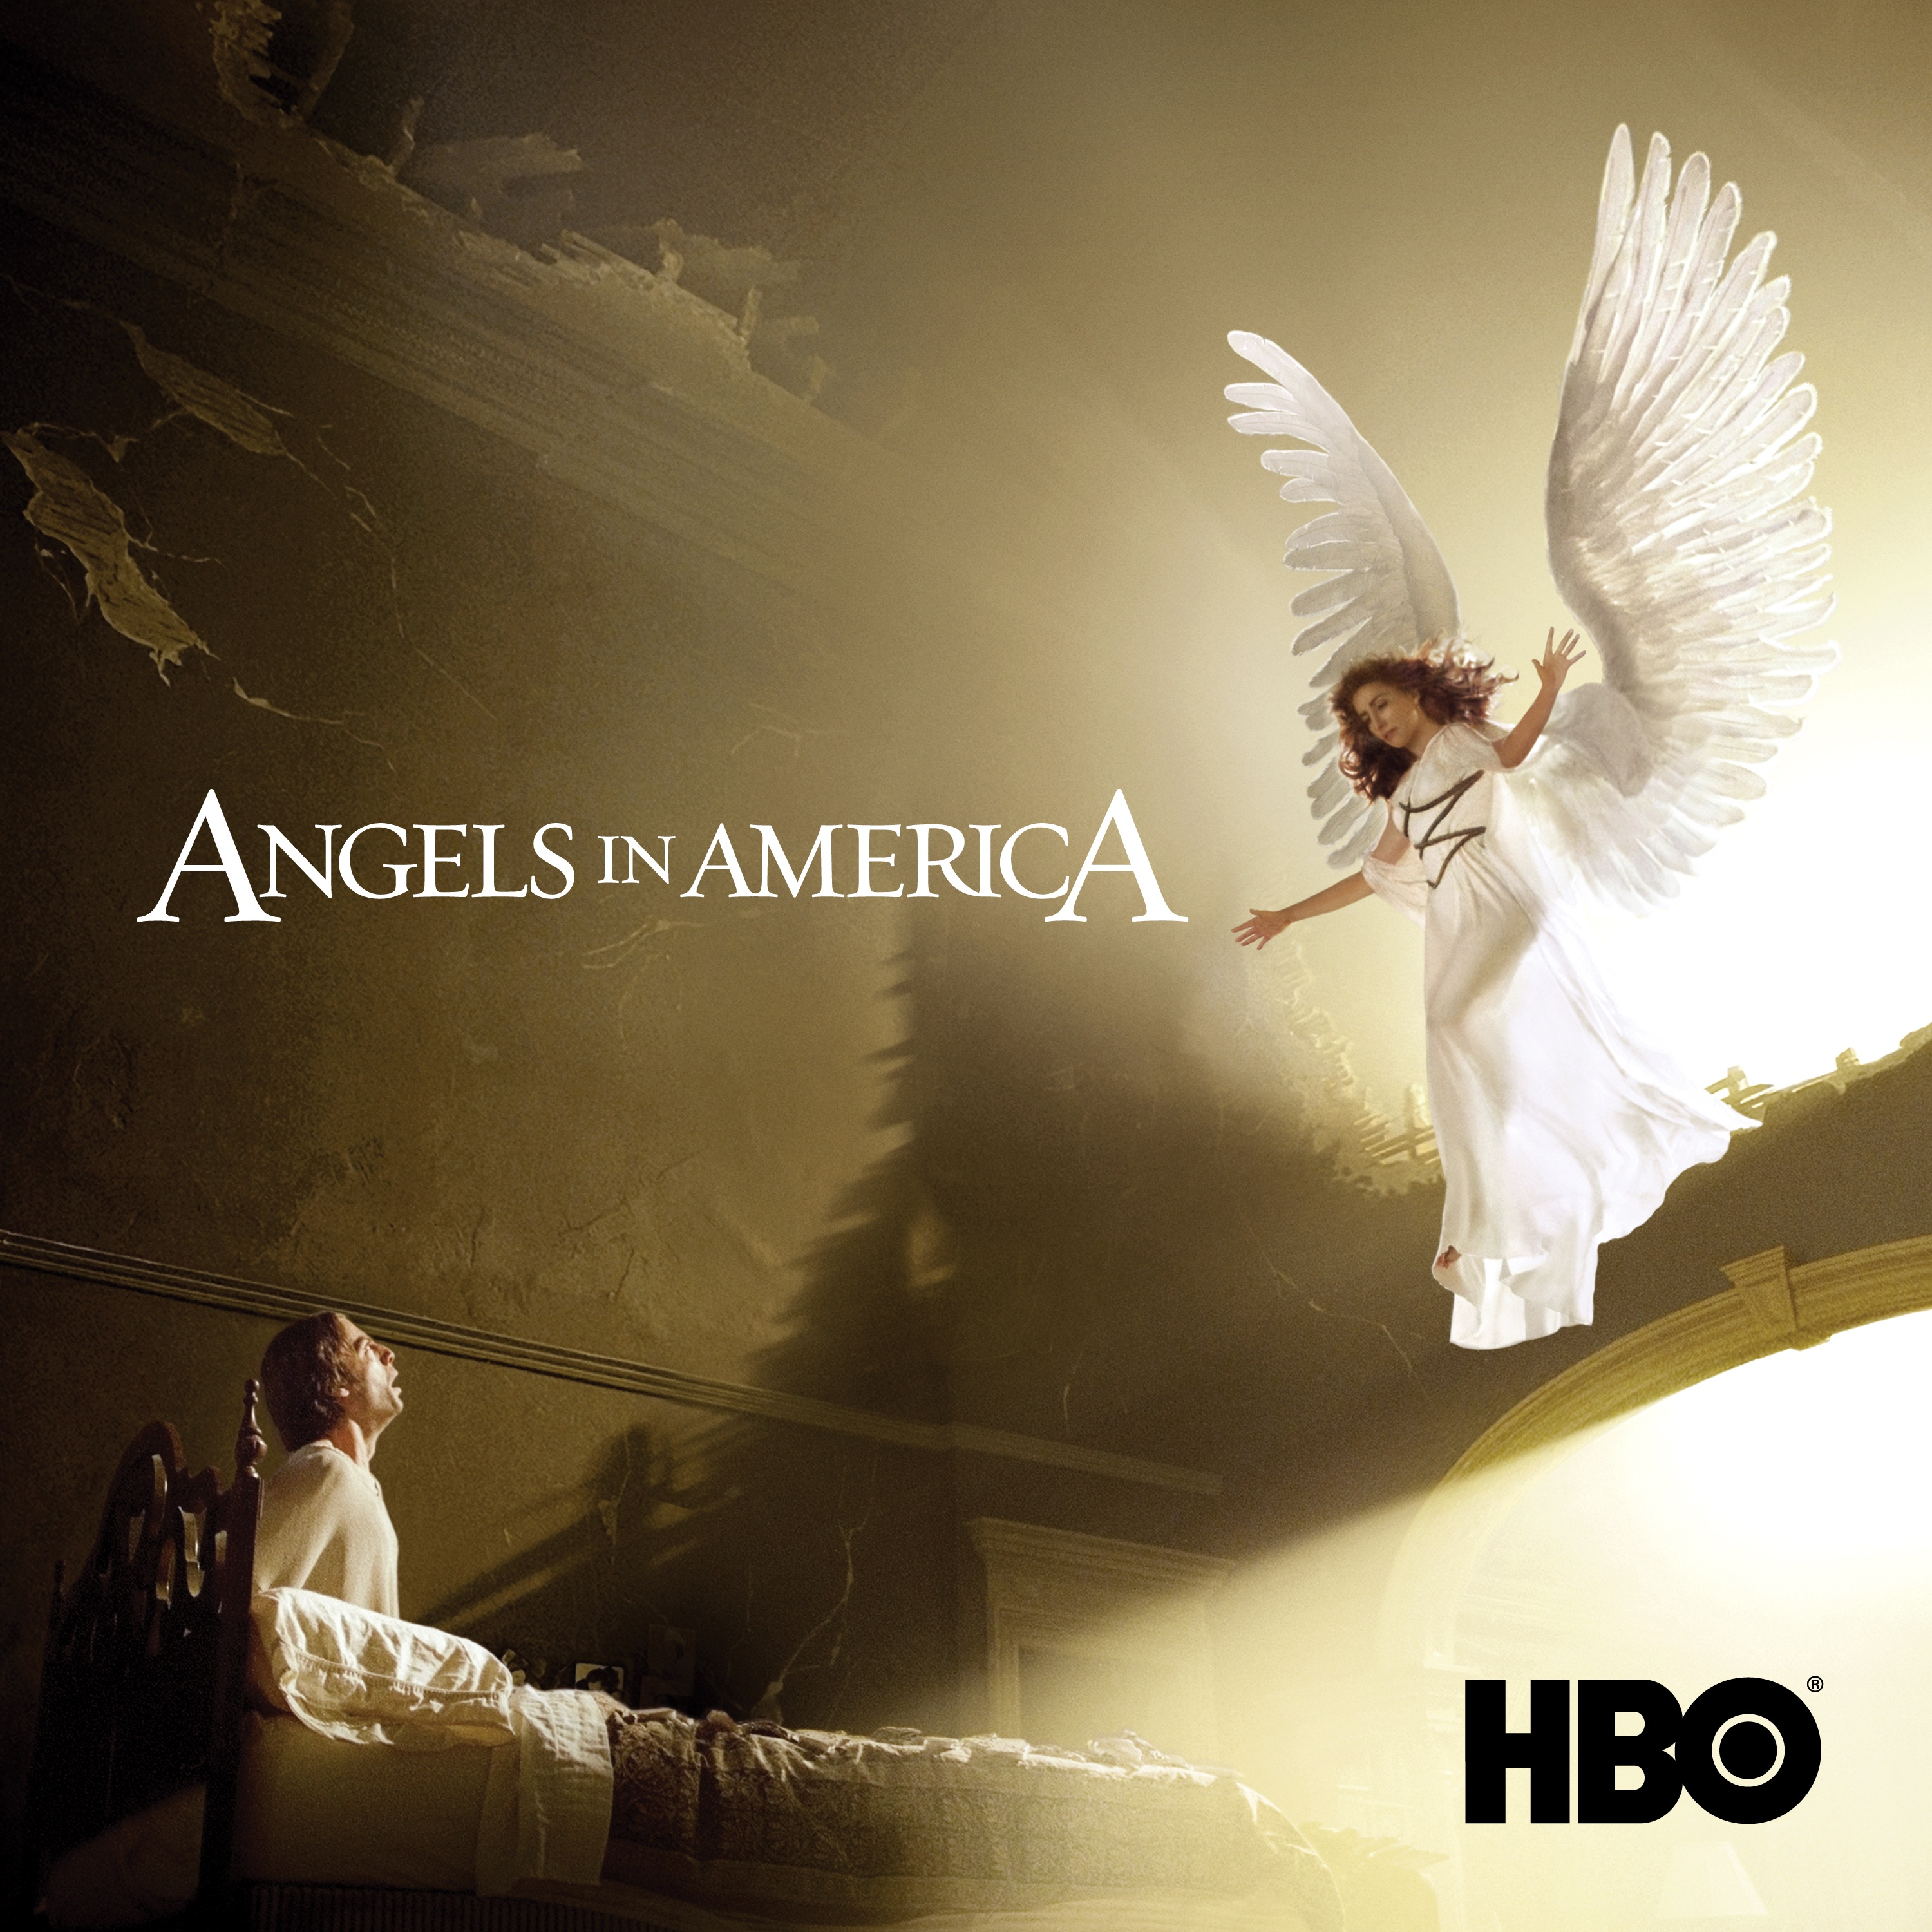 the struggle with identity in angels in america a play by tony kushner Ebook written by tony kushner read this book using google play books  world of political struggle  tony kushner, author of angels in america,.